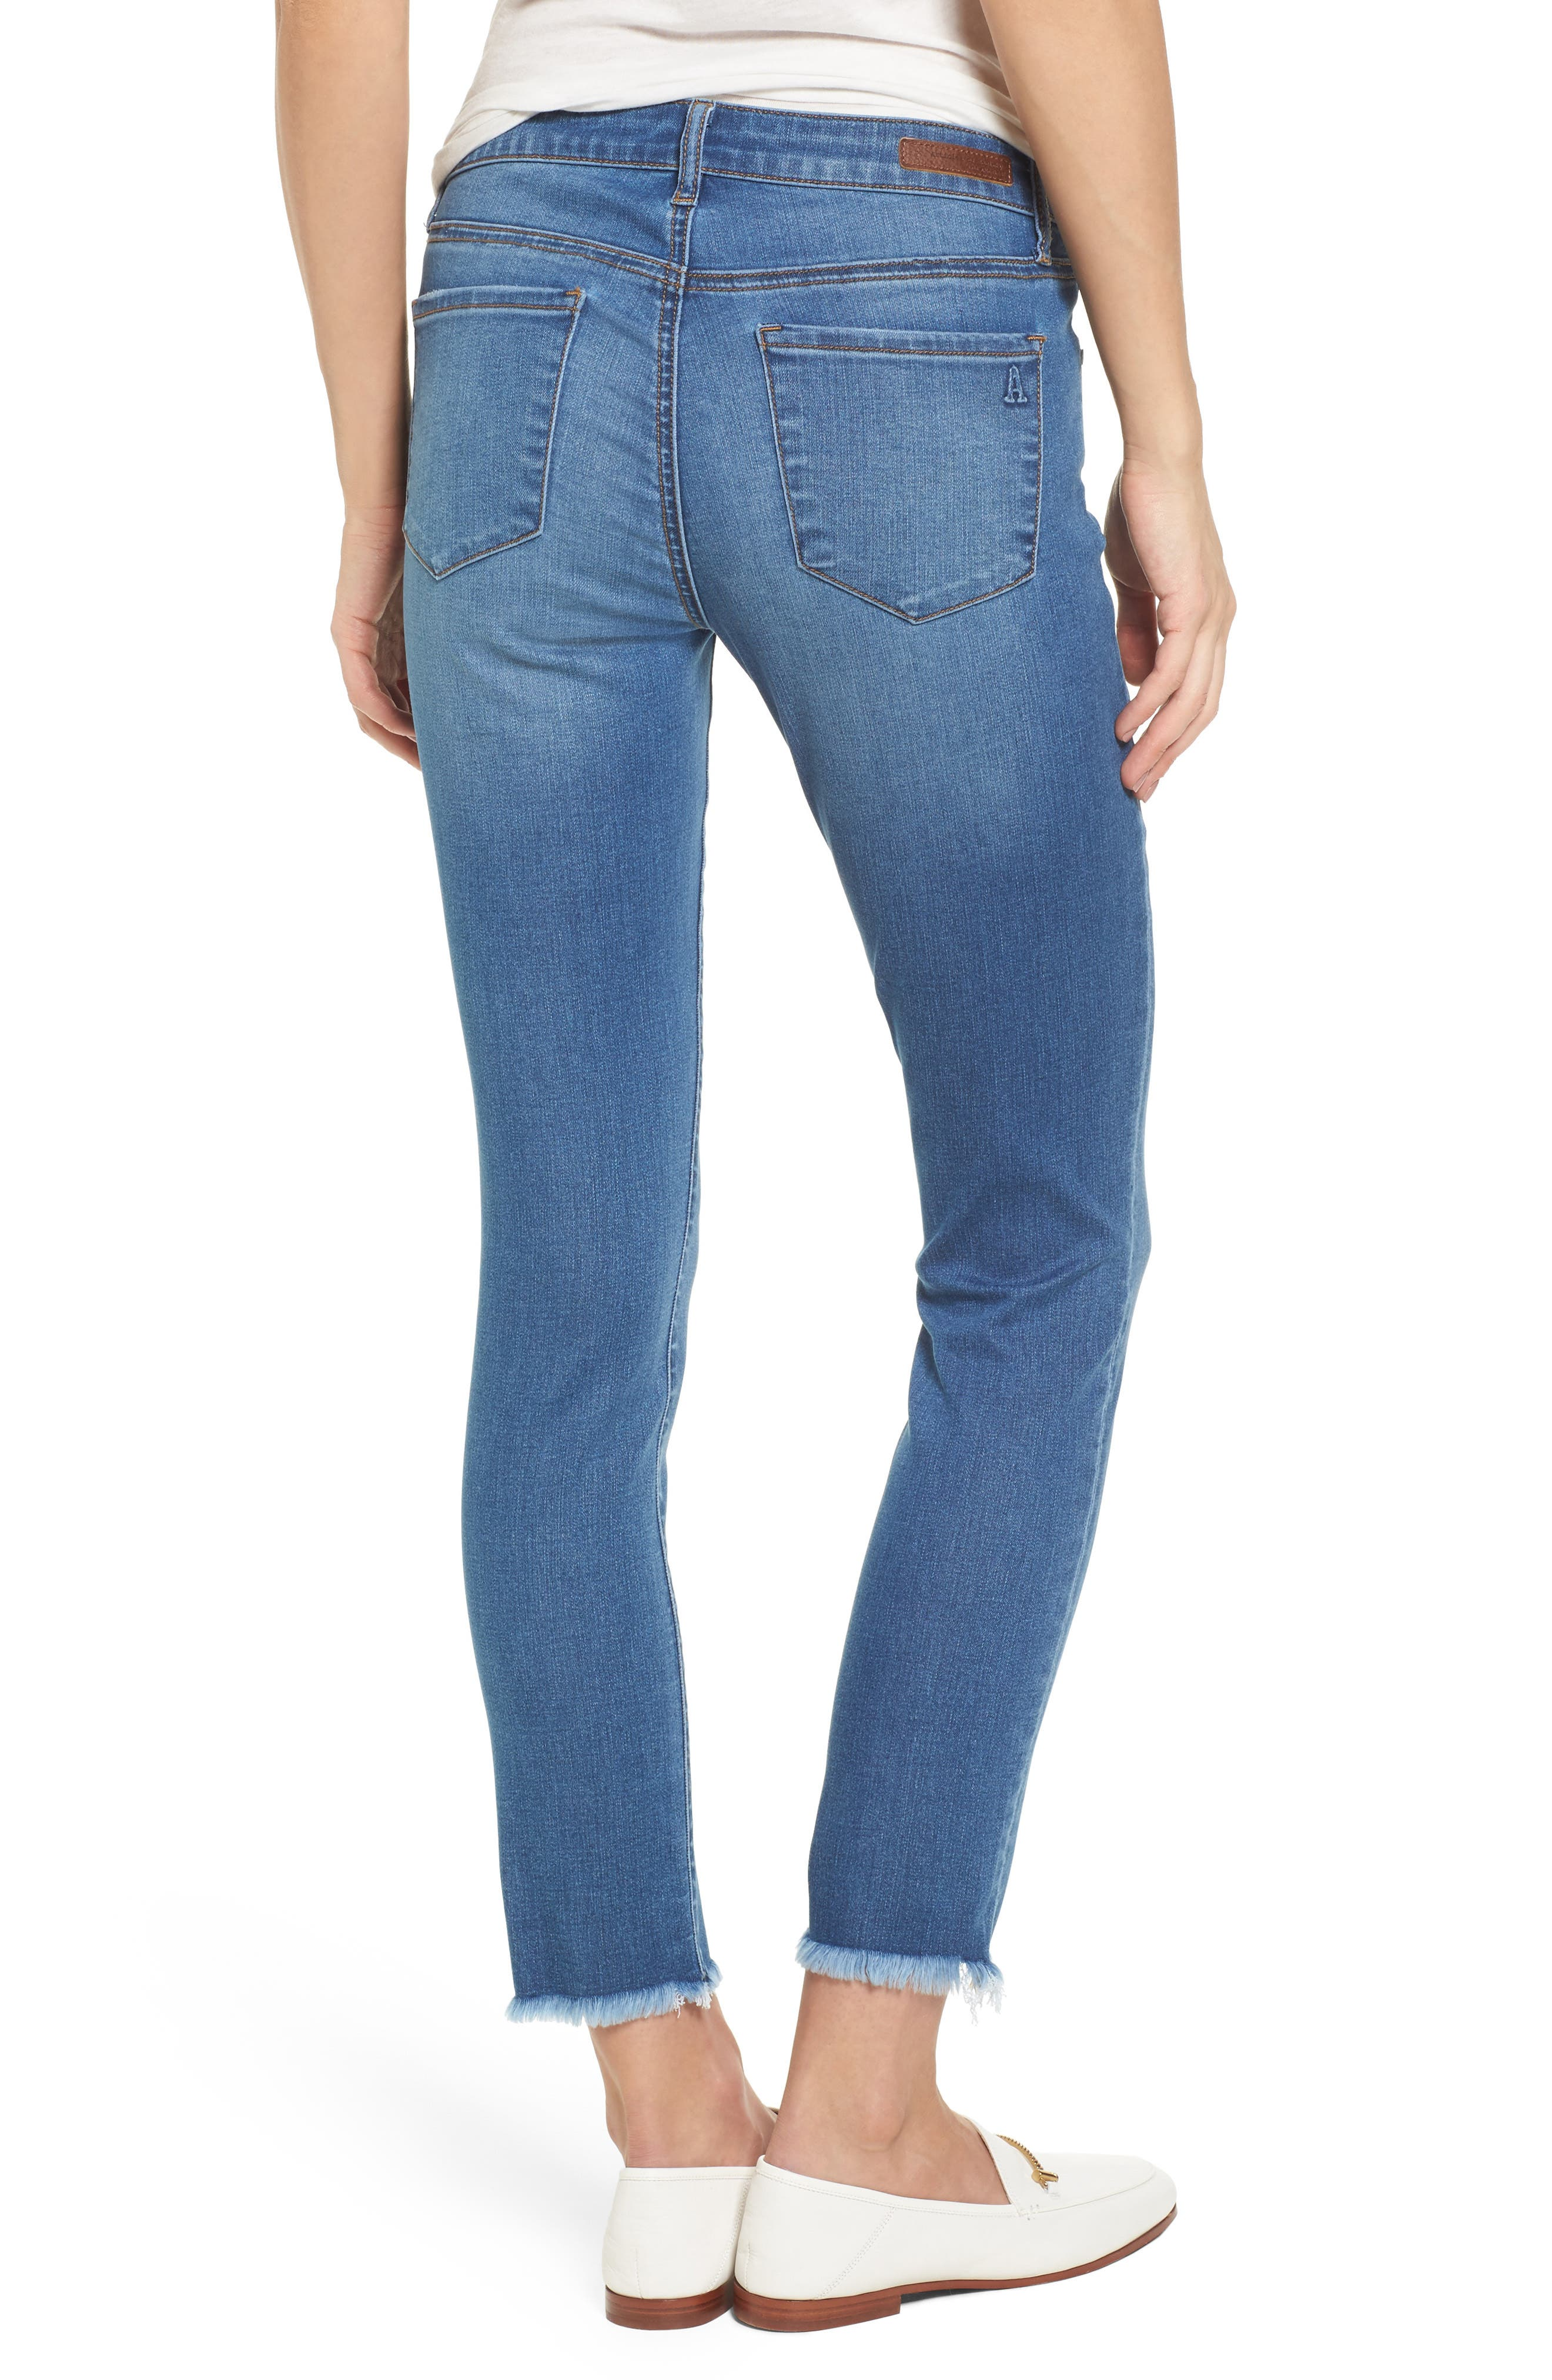 Carly Ankle Skinny Jeans,                             Alternate thumbnail 2, color,                             400